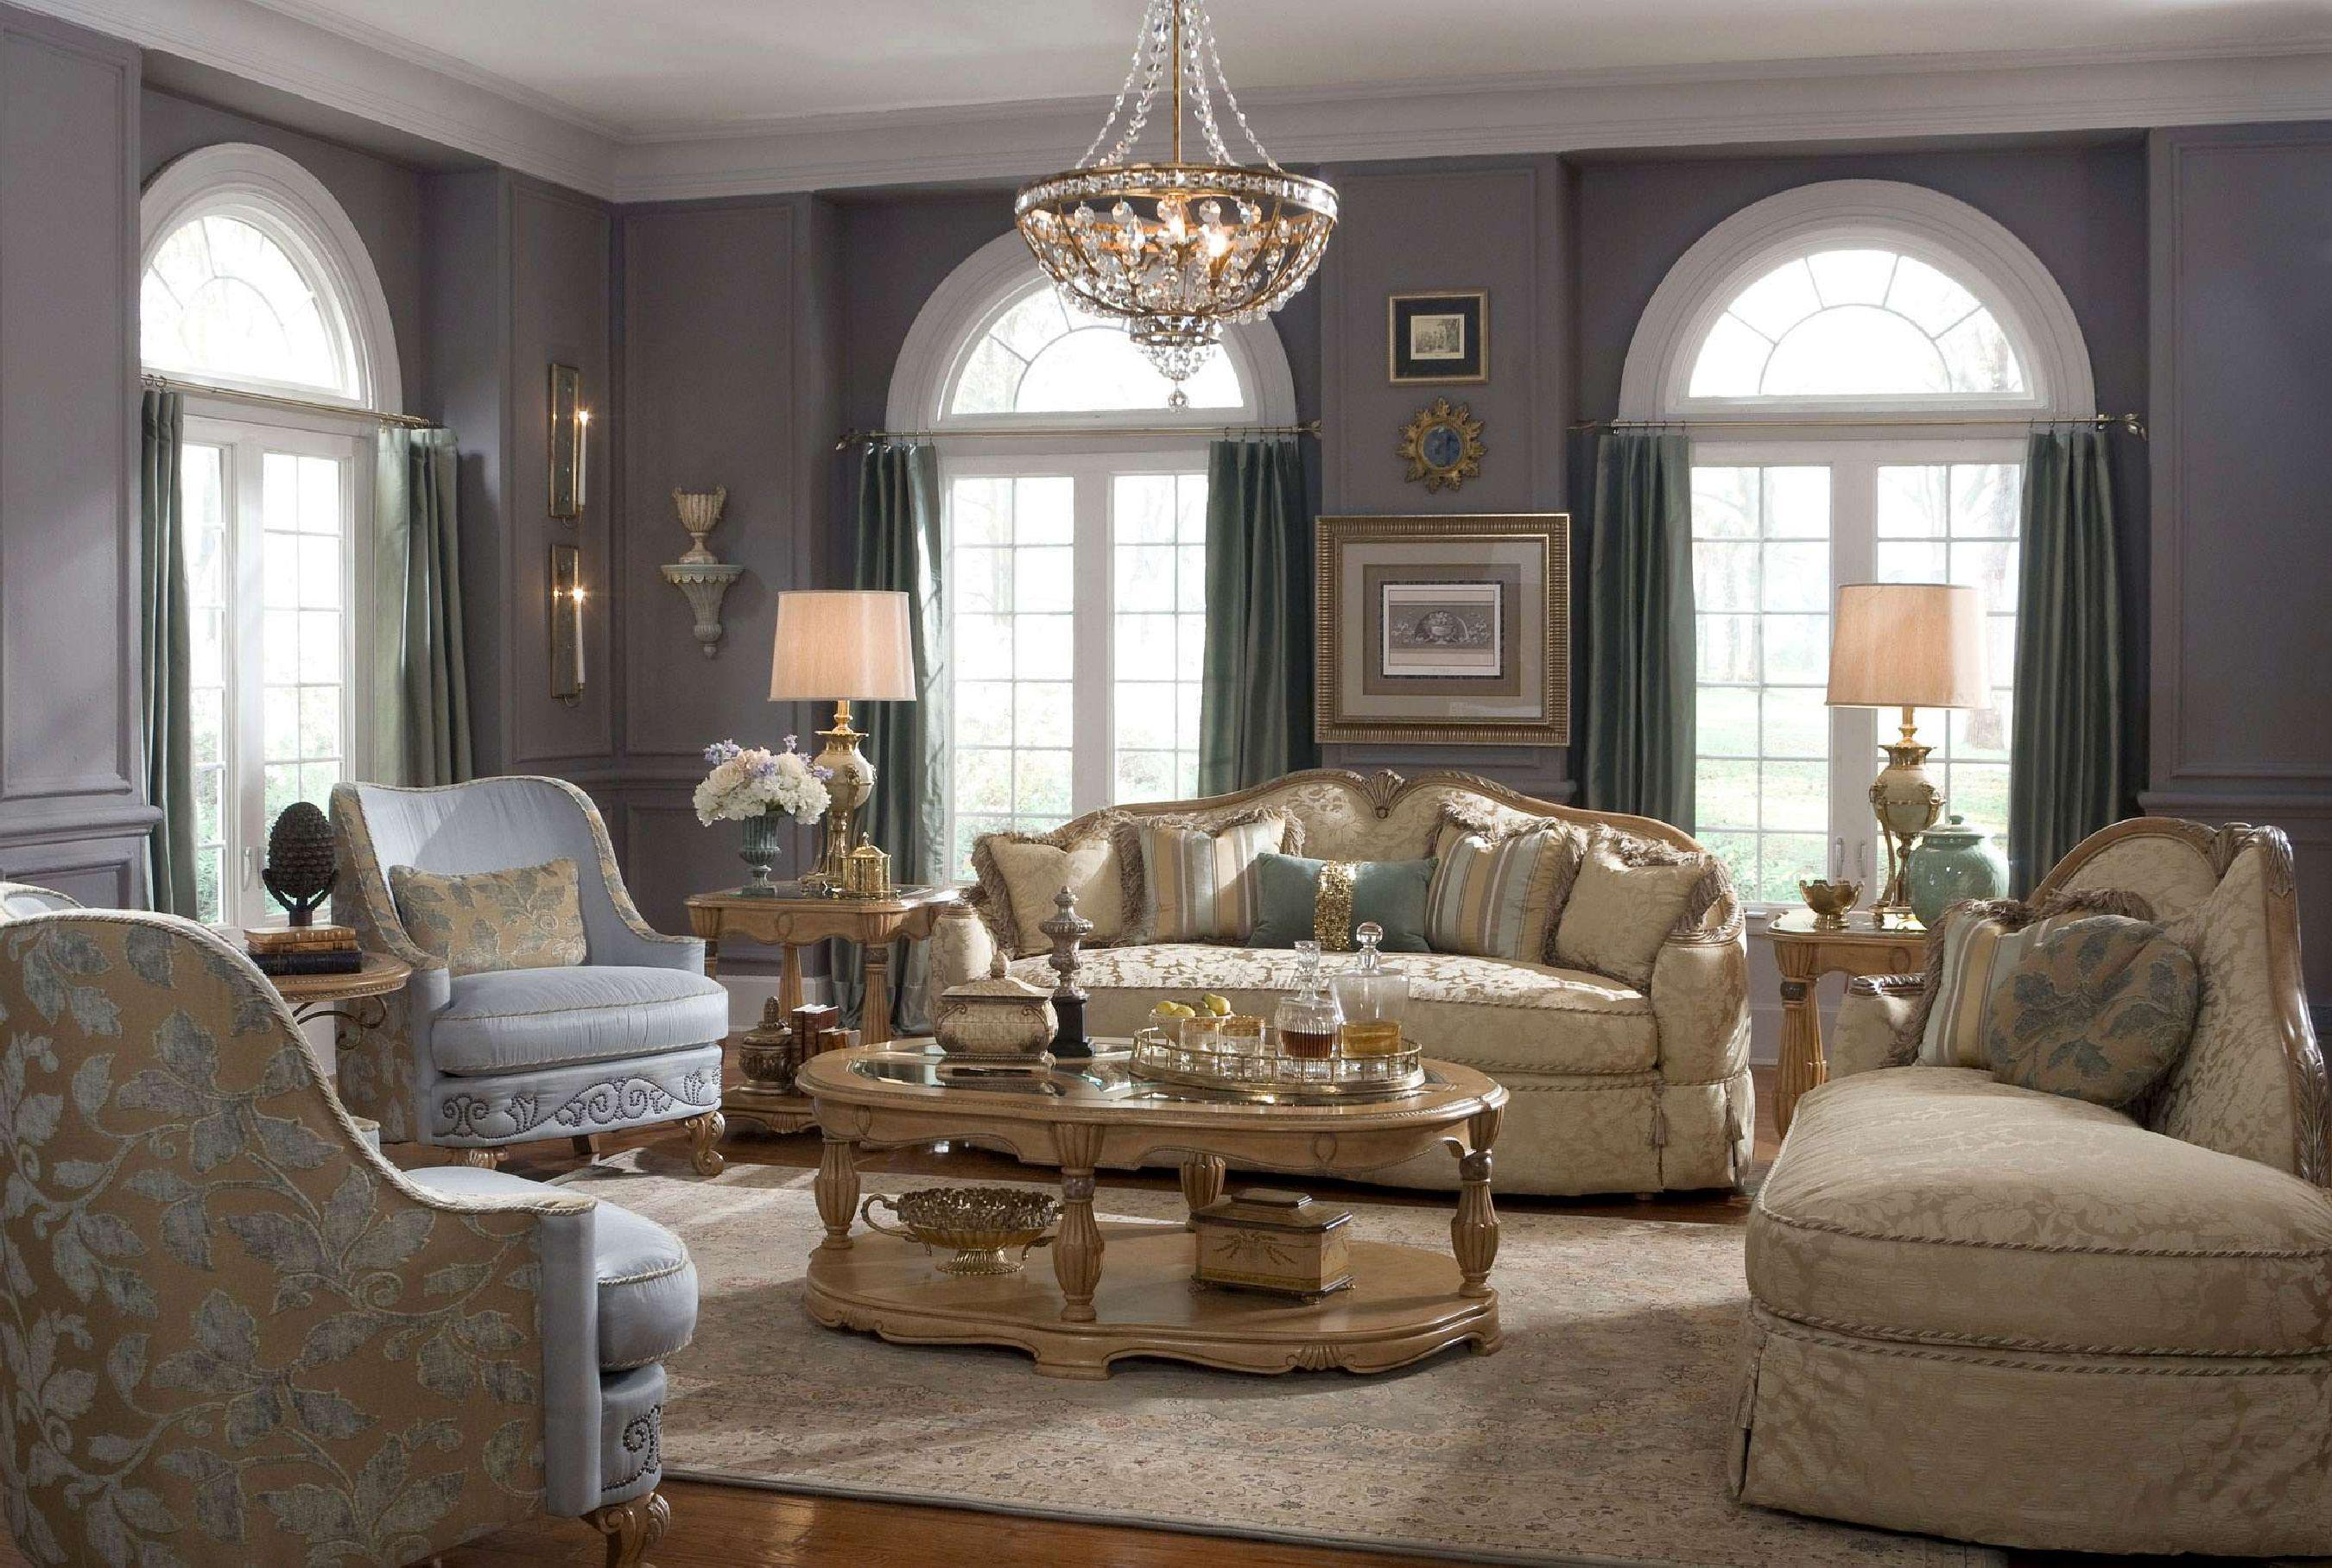 3 Benefits Of Decorating Your Home With Antiques 3 Benefits Of